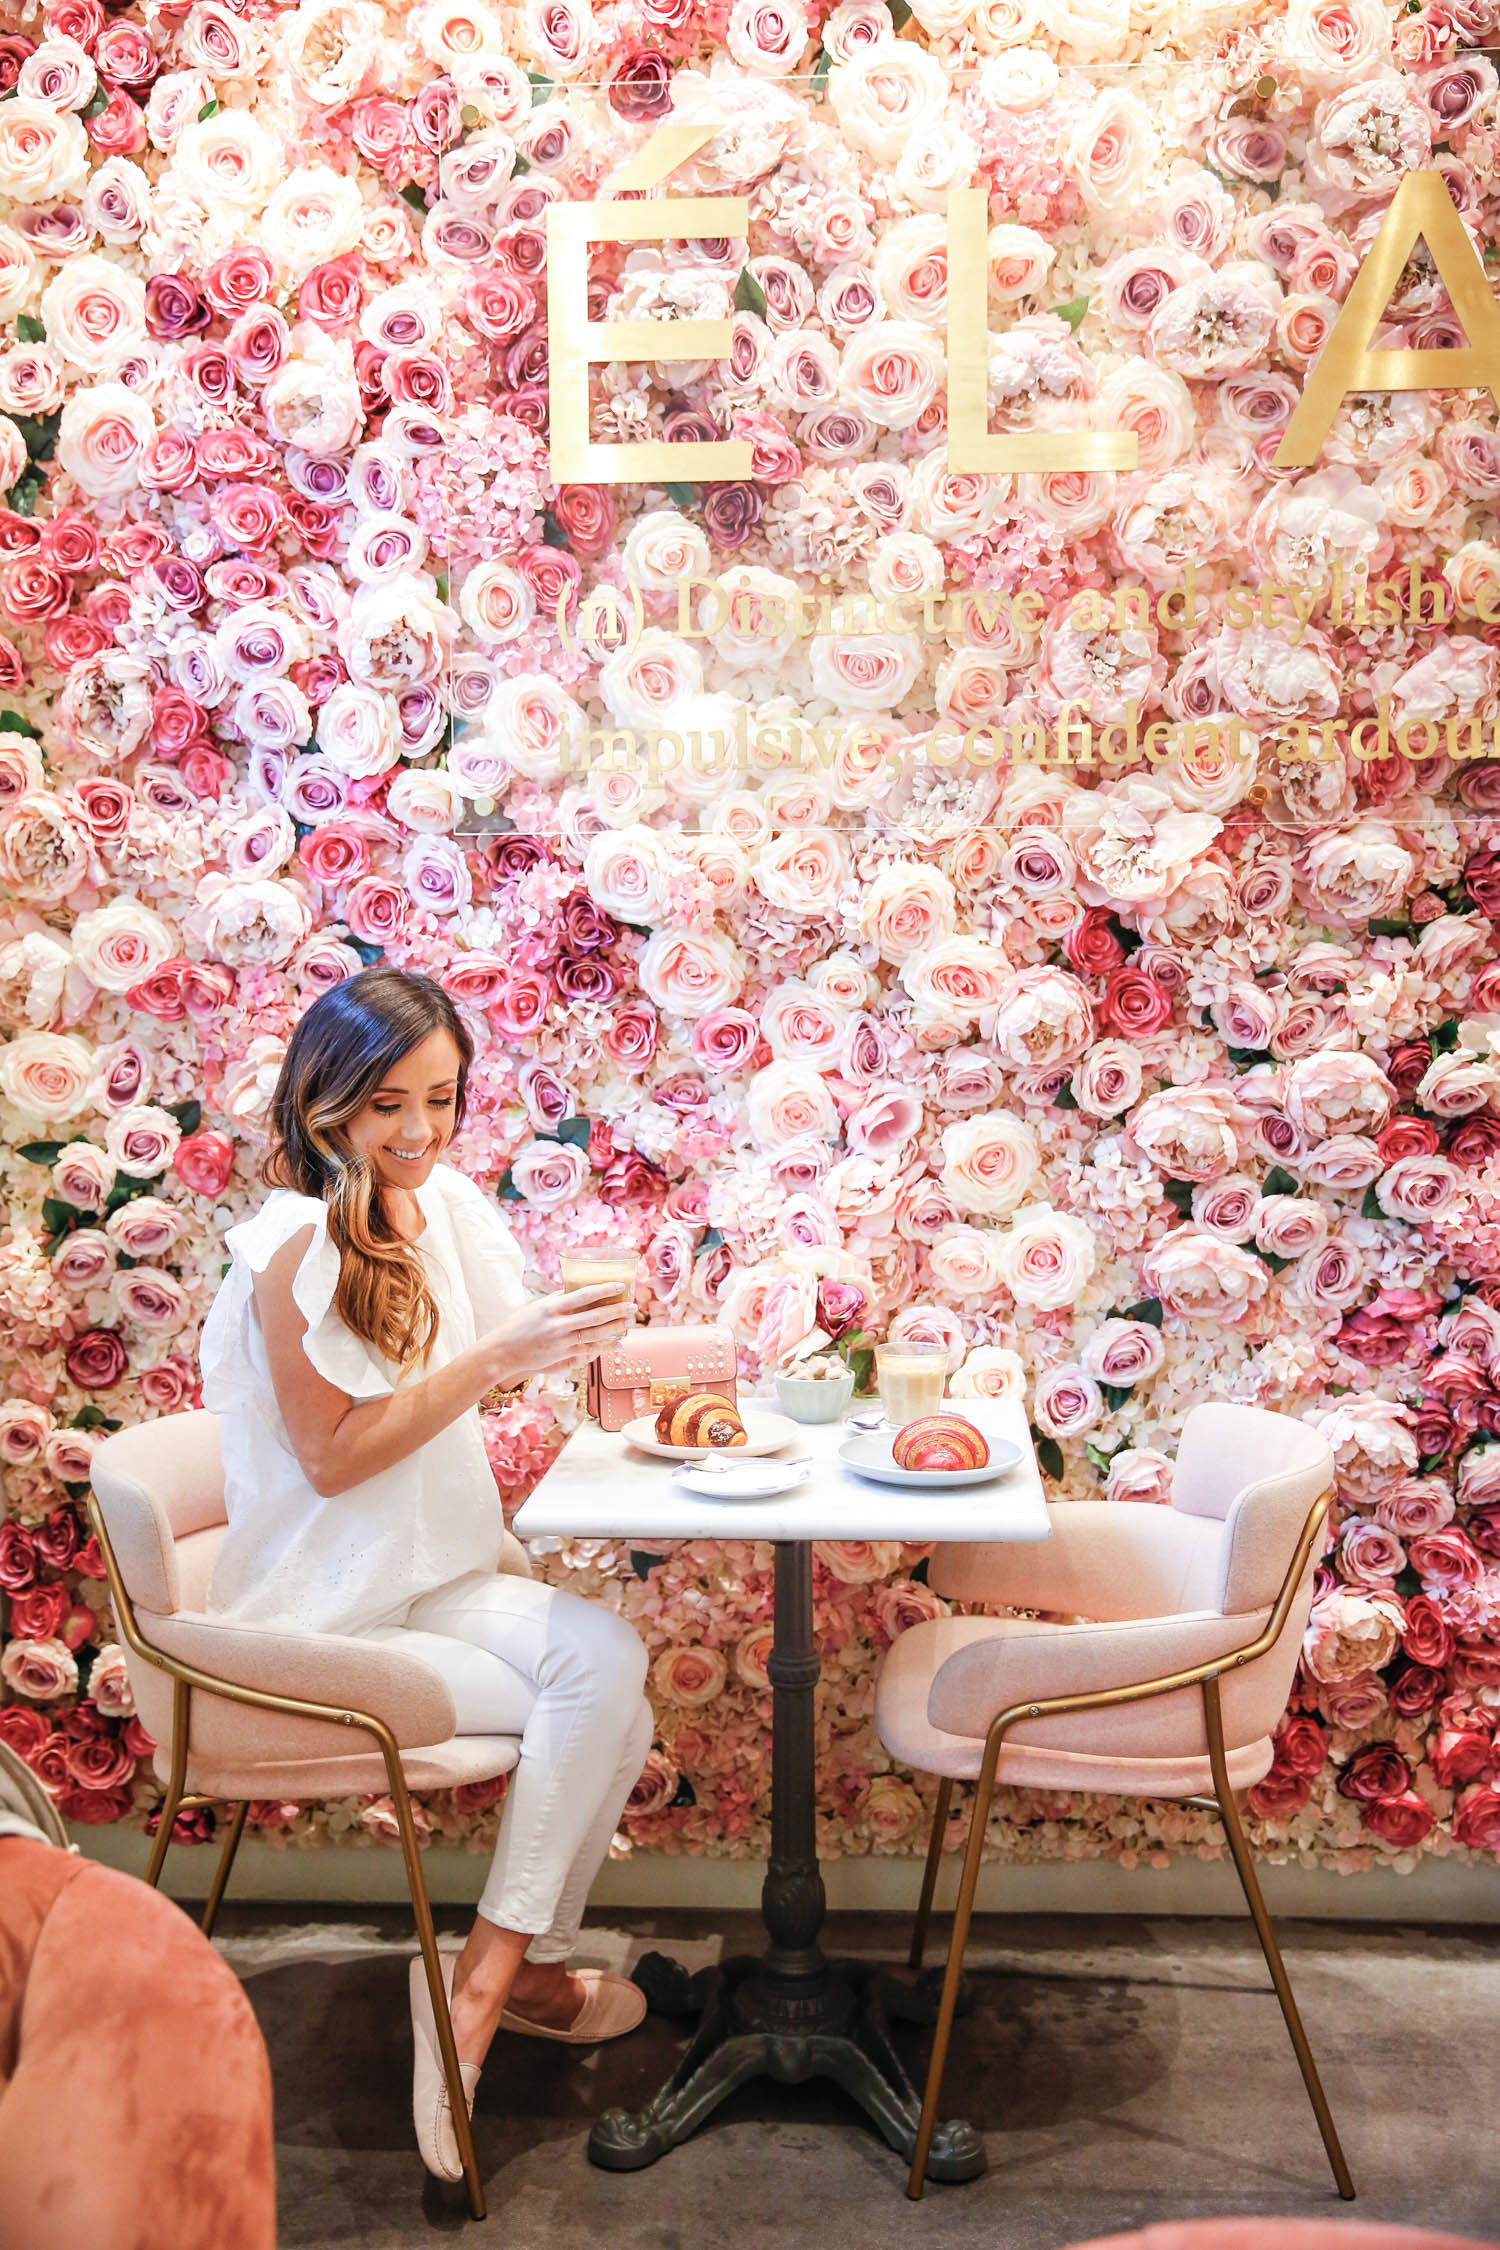 most instagrammable spots in london, elan cafe, flower wall, london, england